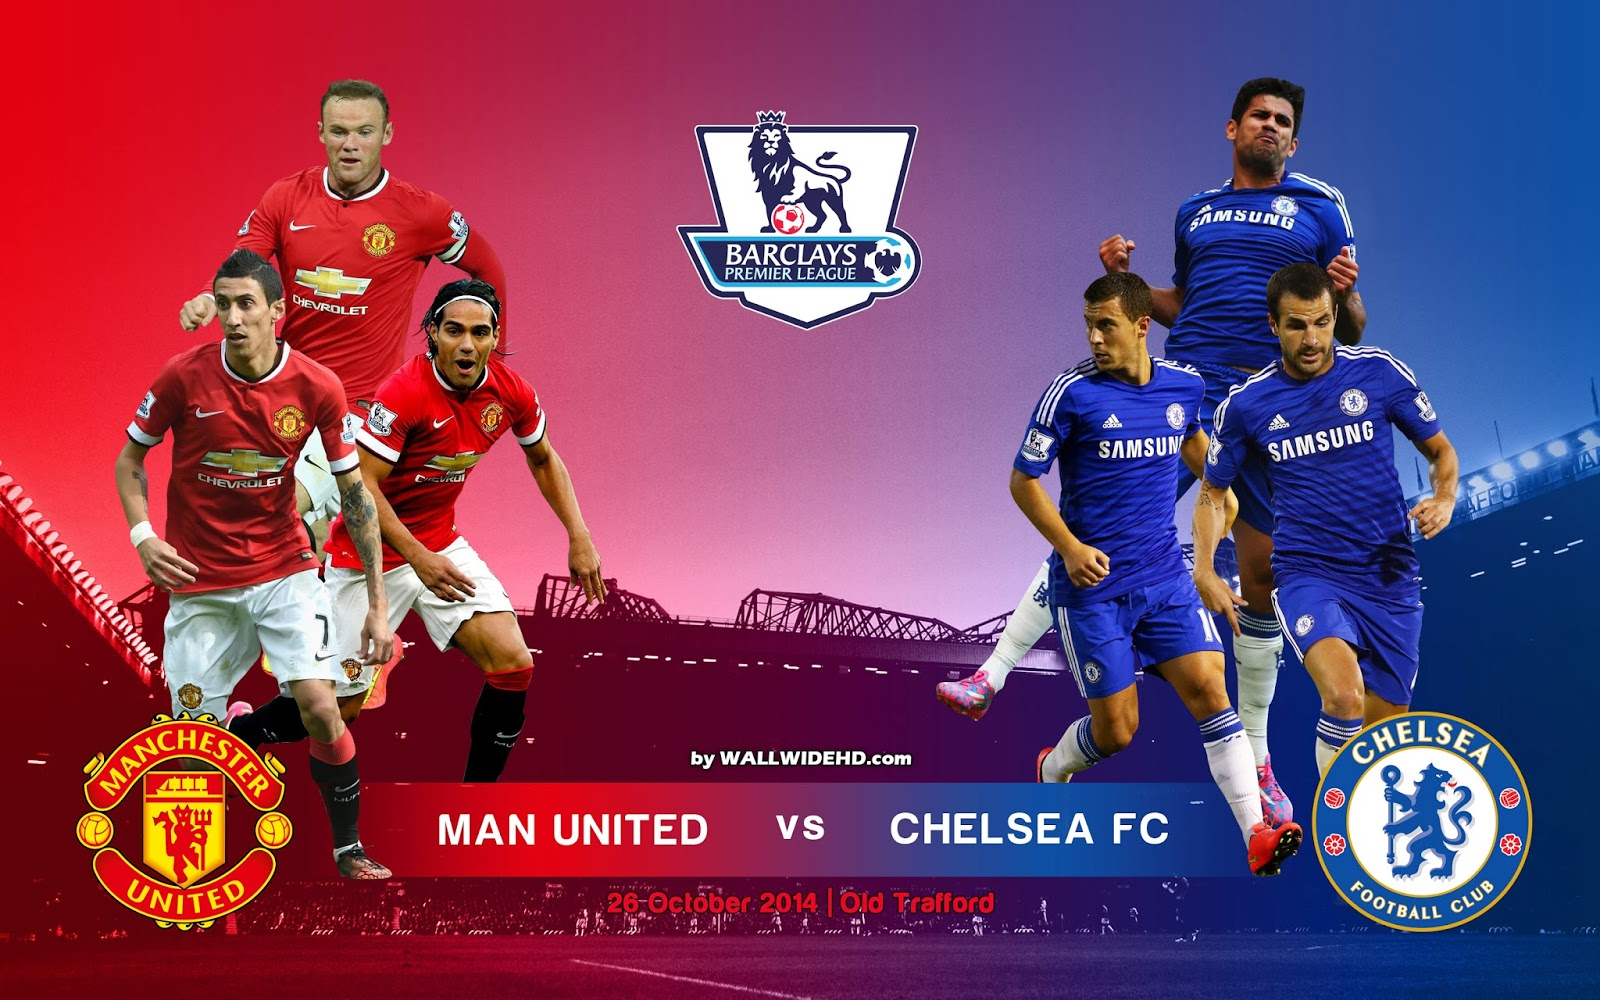 Kumpulan Wallpaper Manchester United Vs Chelsea